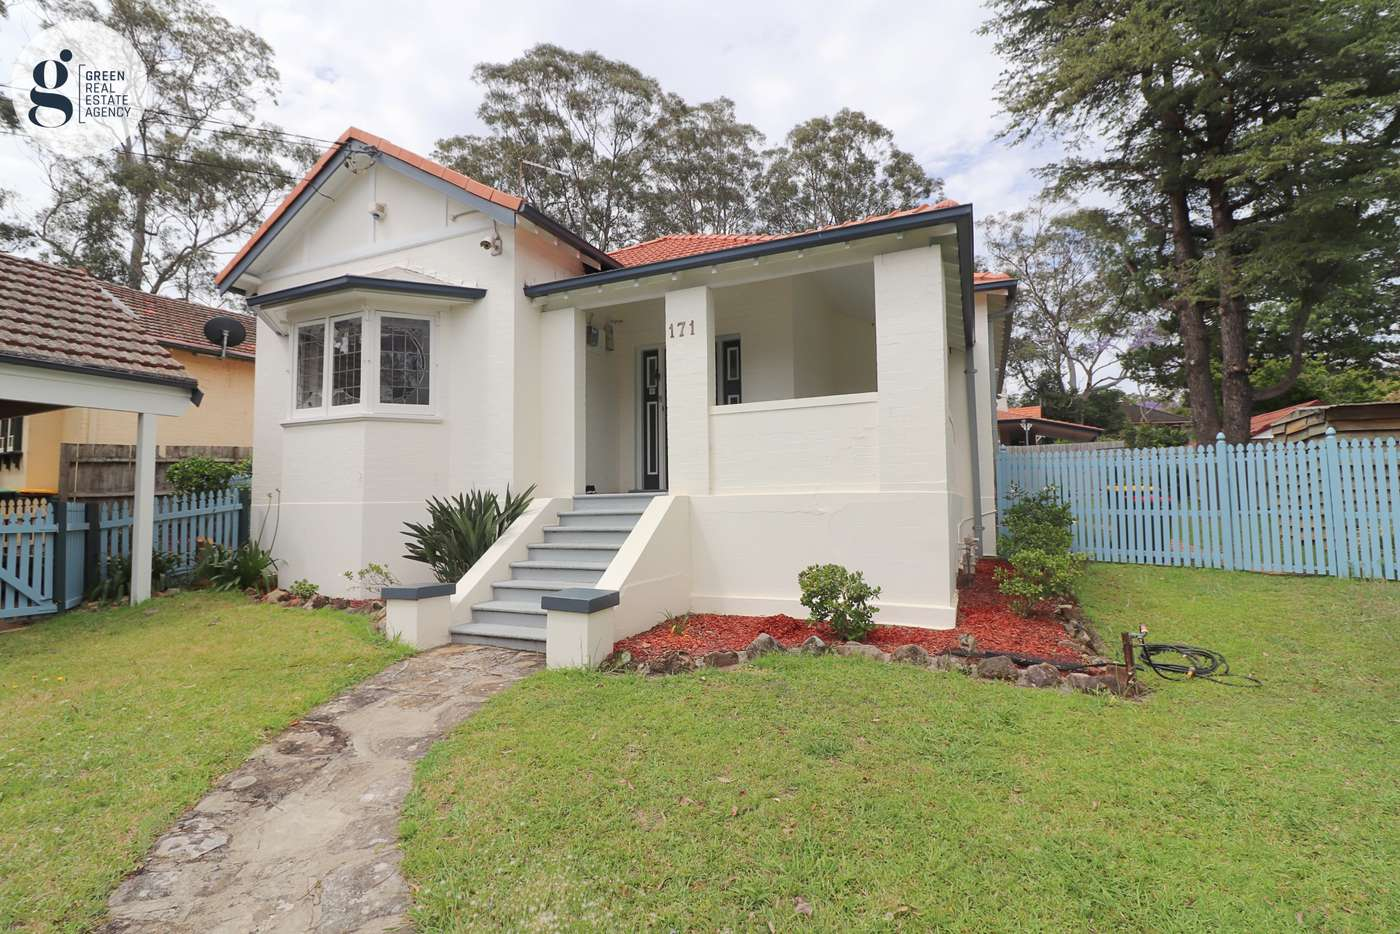 Main view of Homely house listing, 171 Ryedale Road, West Ryde NSW 2114